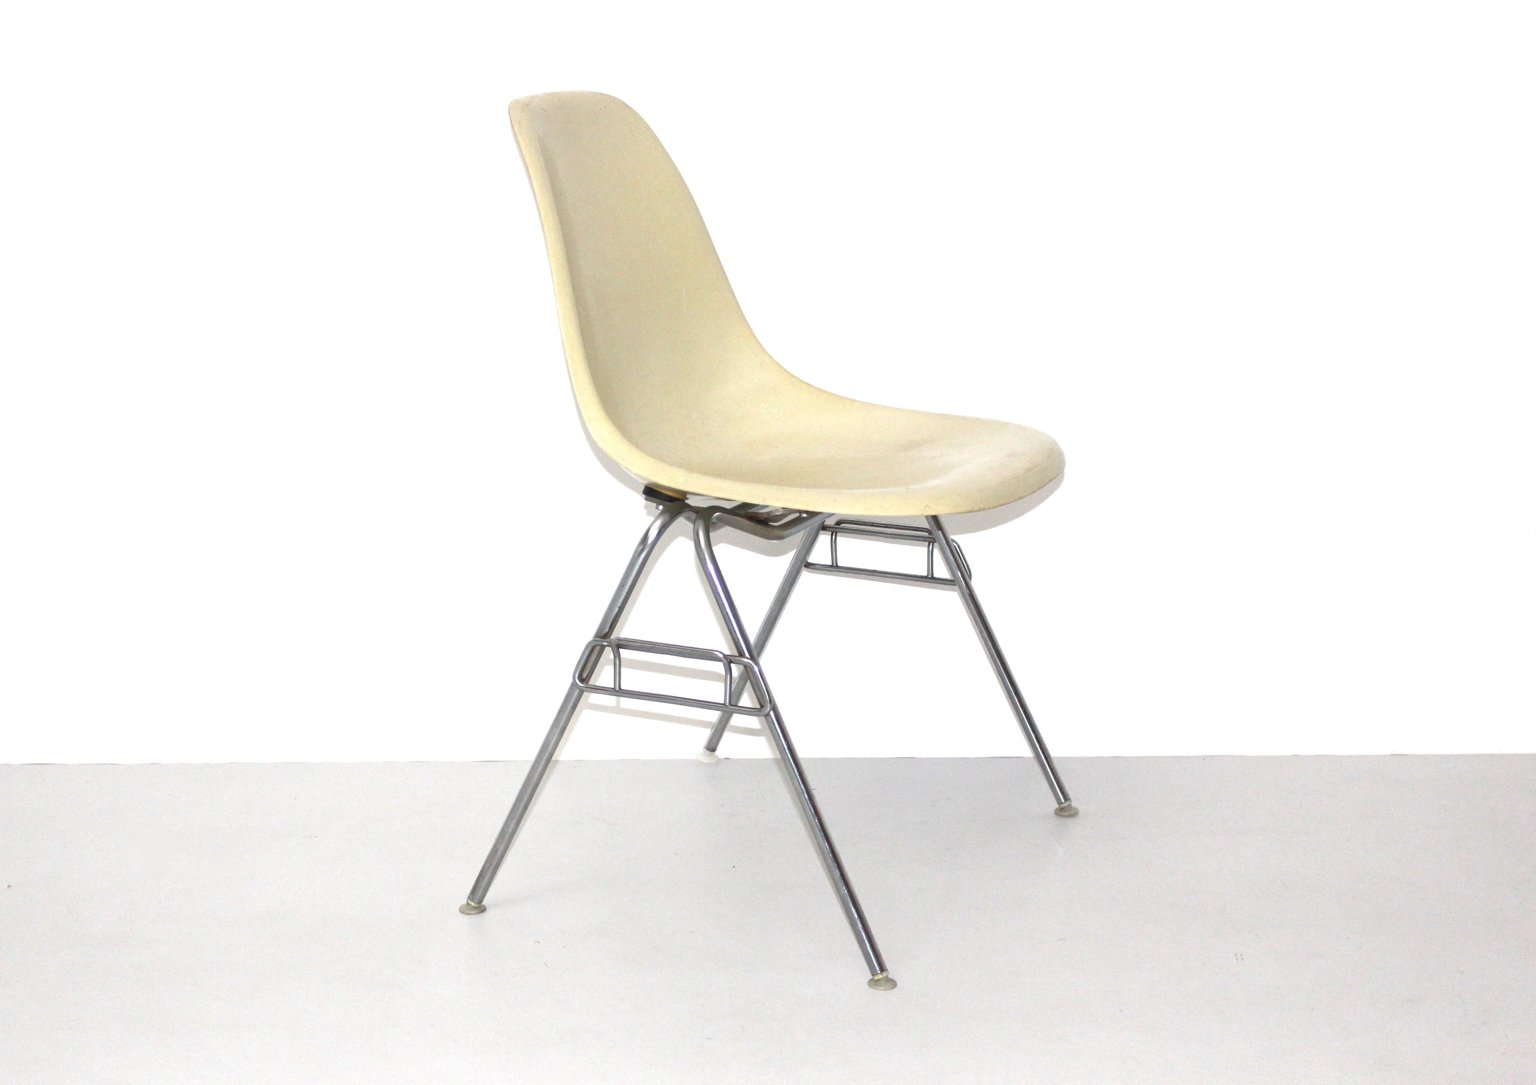 Chaise Charles Et Ray Eames Vitra And White La